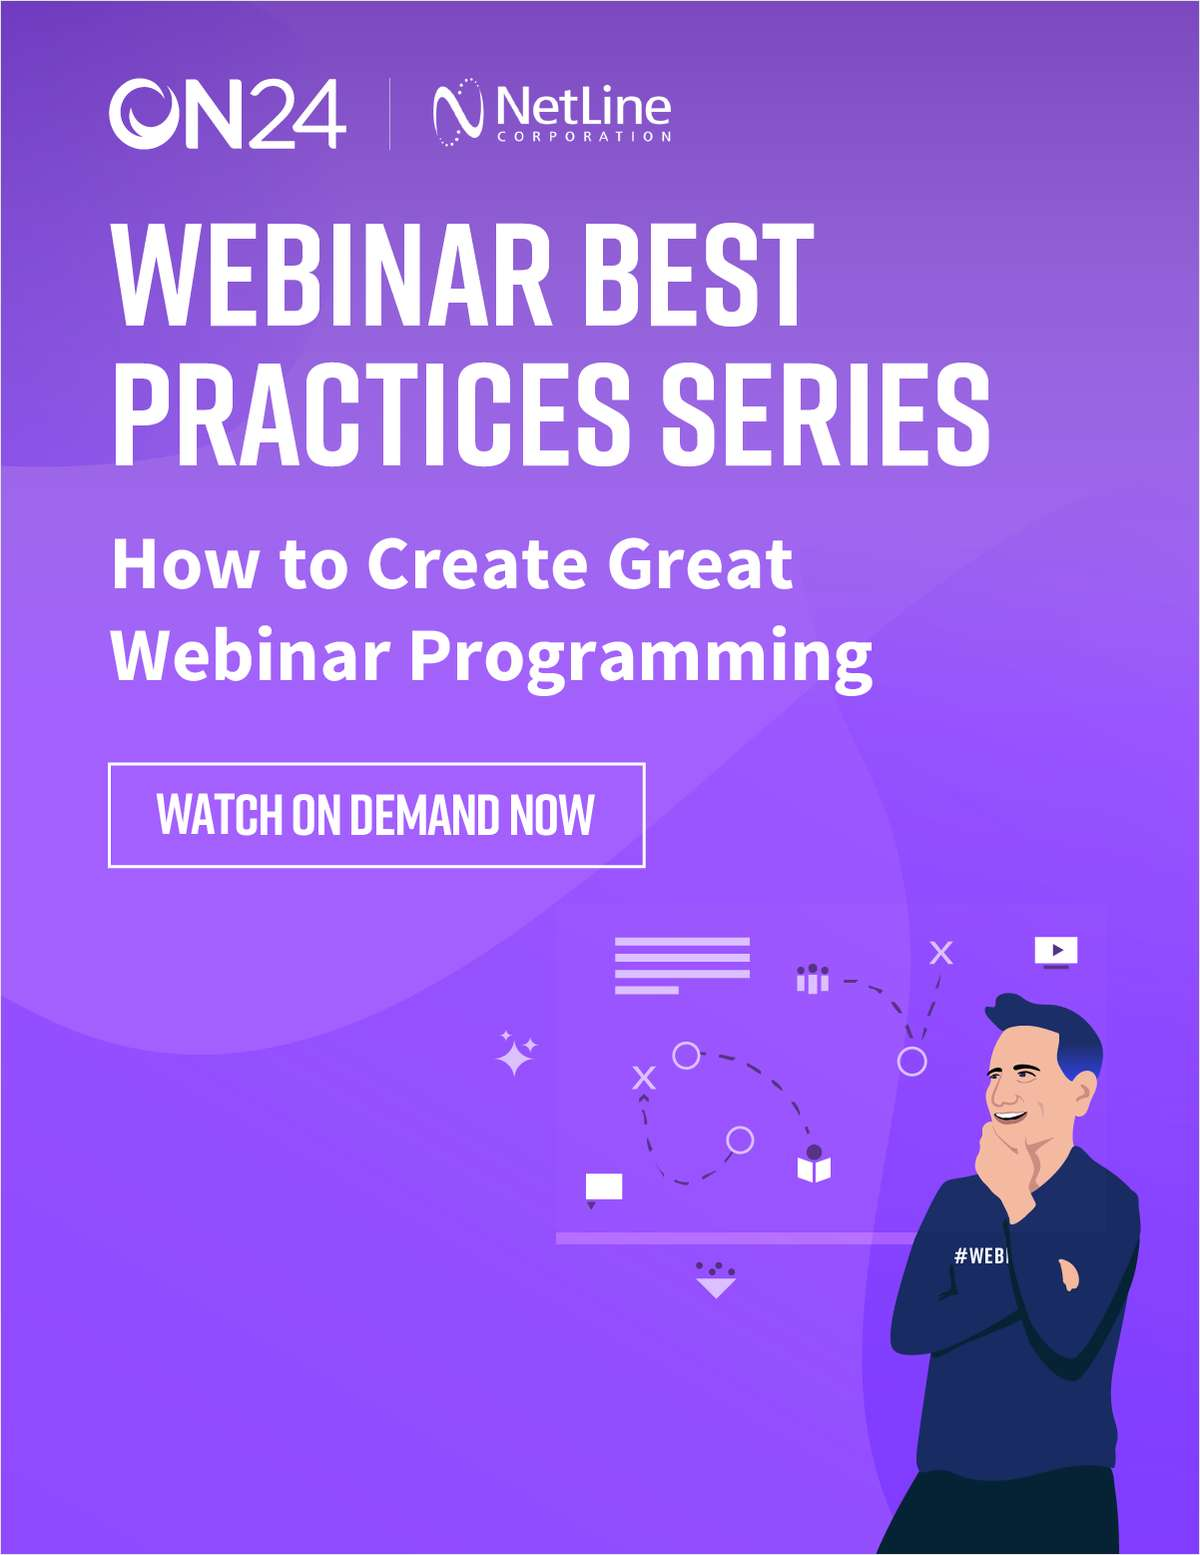 How to Create Great Webinar Programming